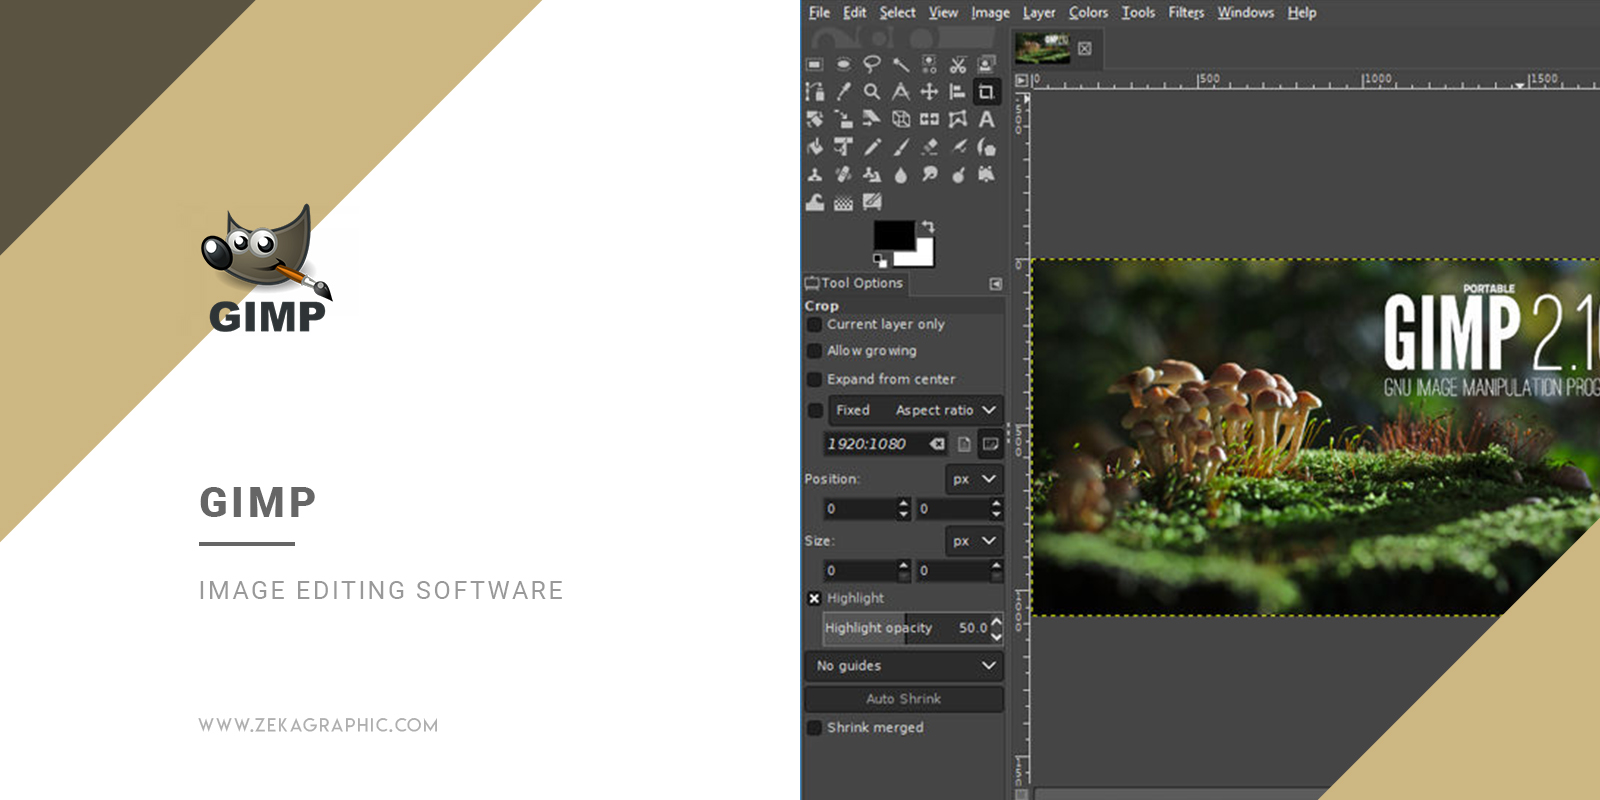 Gimp Image Editing Software for Graphic Design